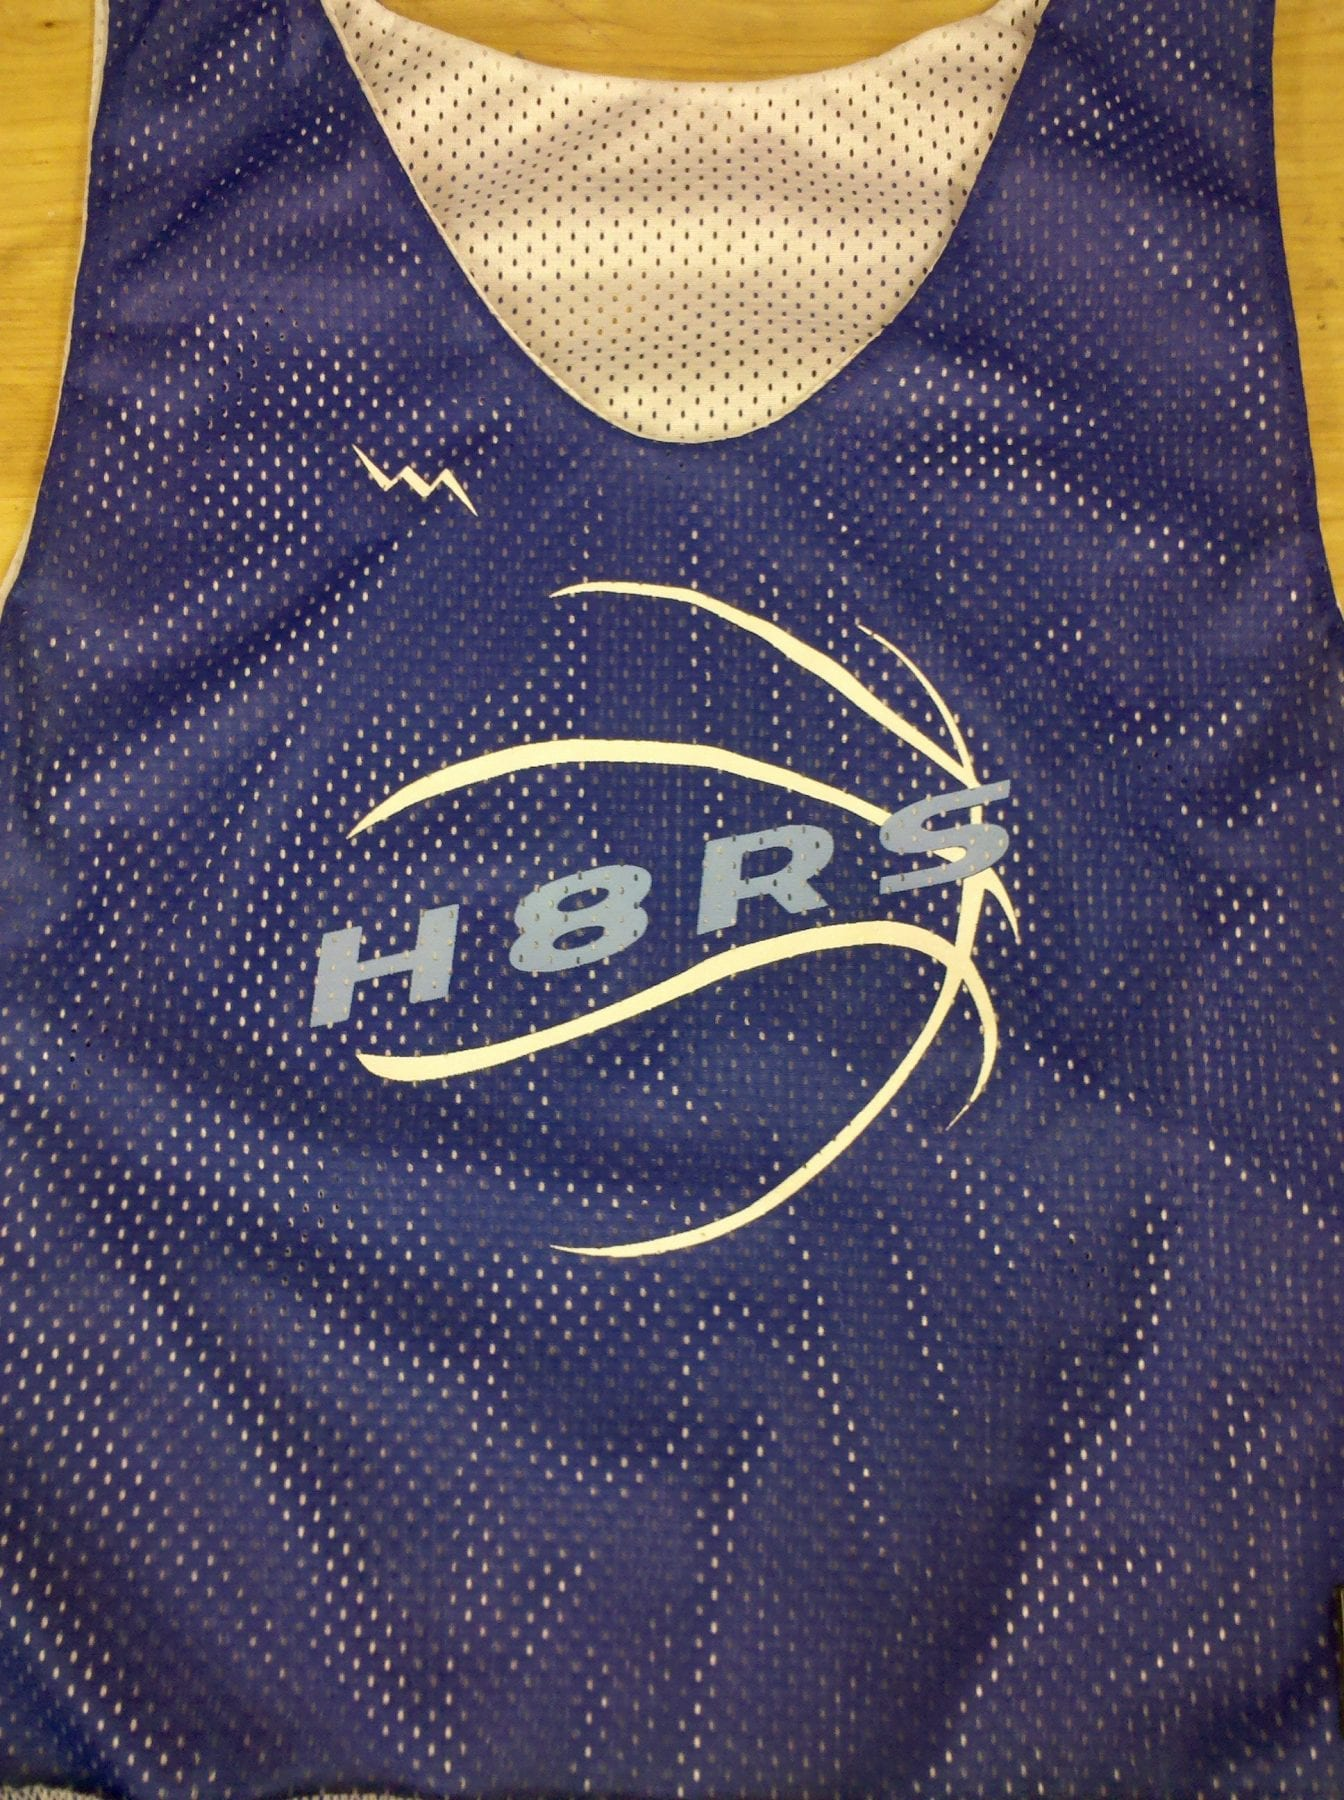 h8rs basketball pinnies